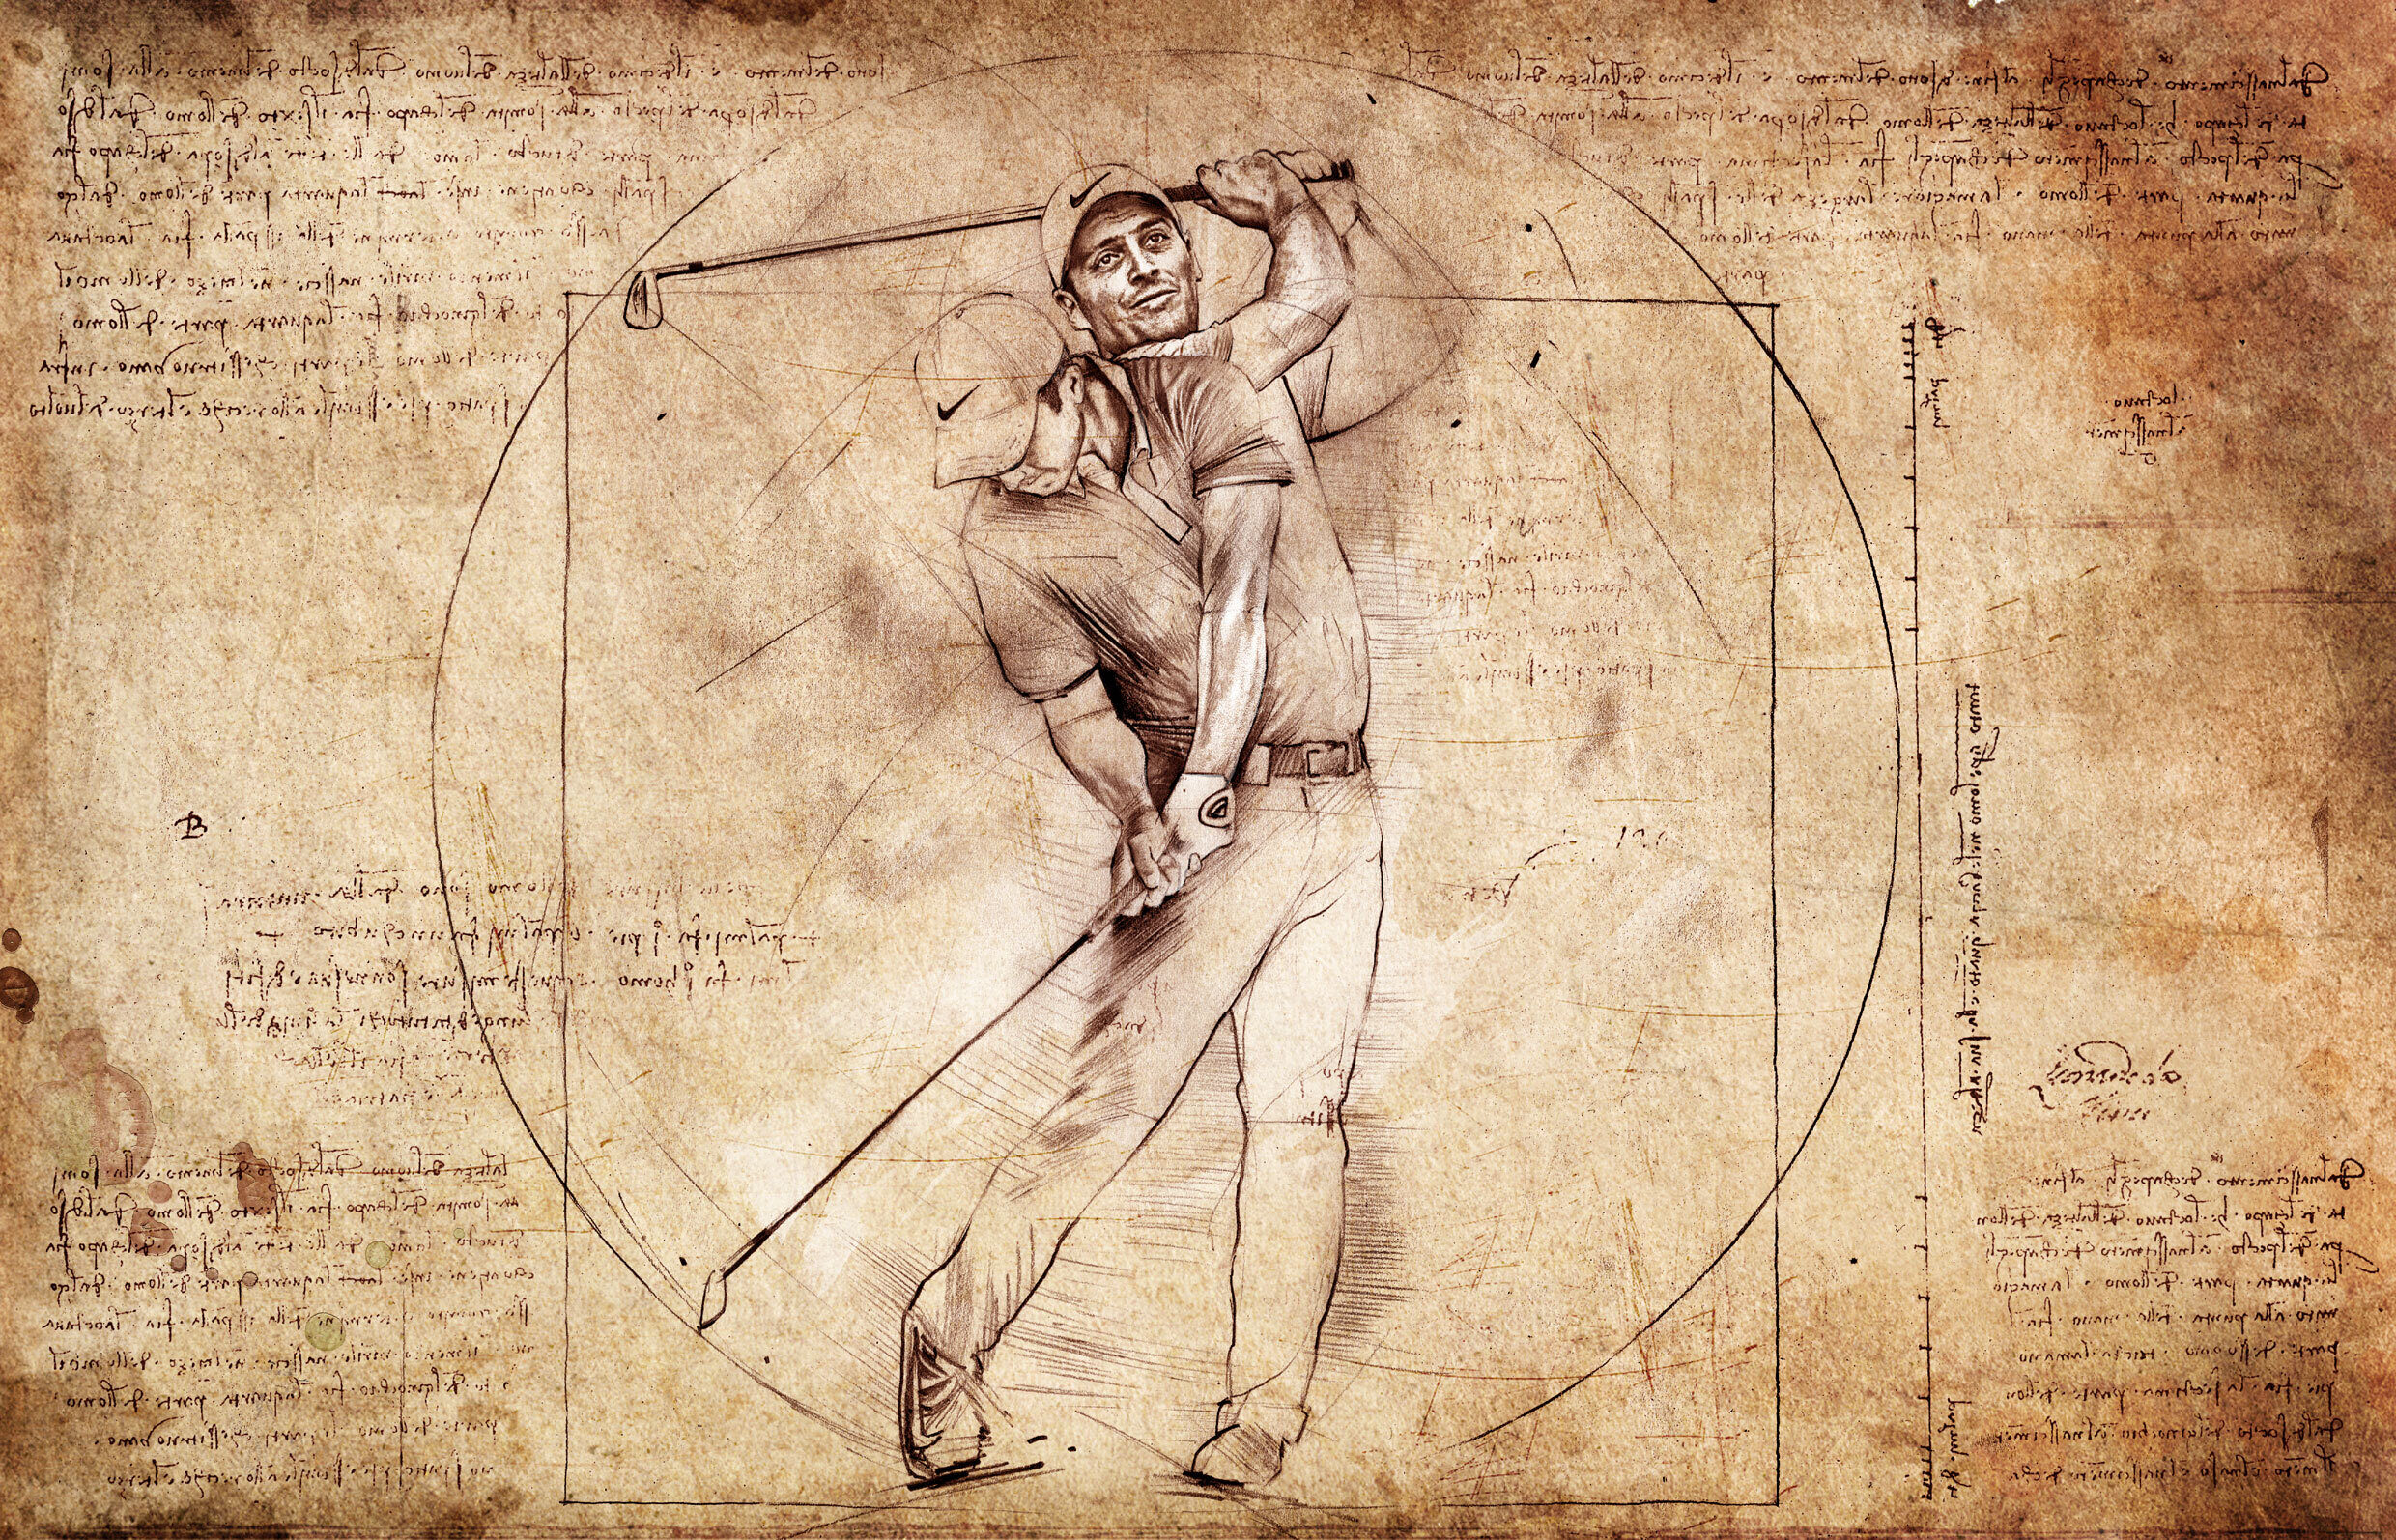 Francesco Molinari Golf leonardo da vinci illustration - Kornel Illustration | Kornel Stadler portfolio